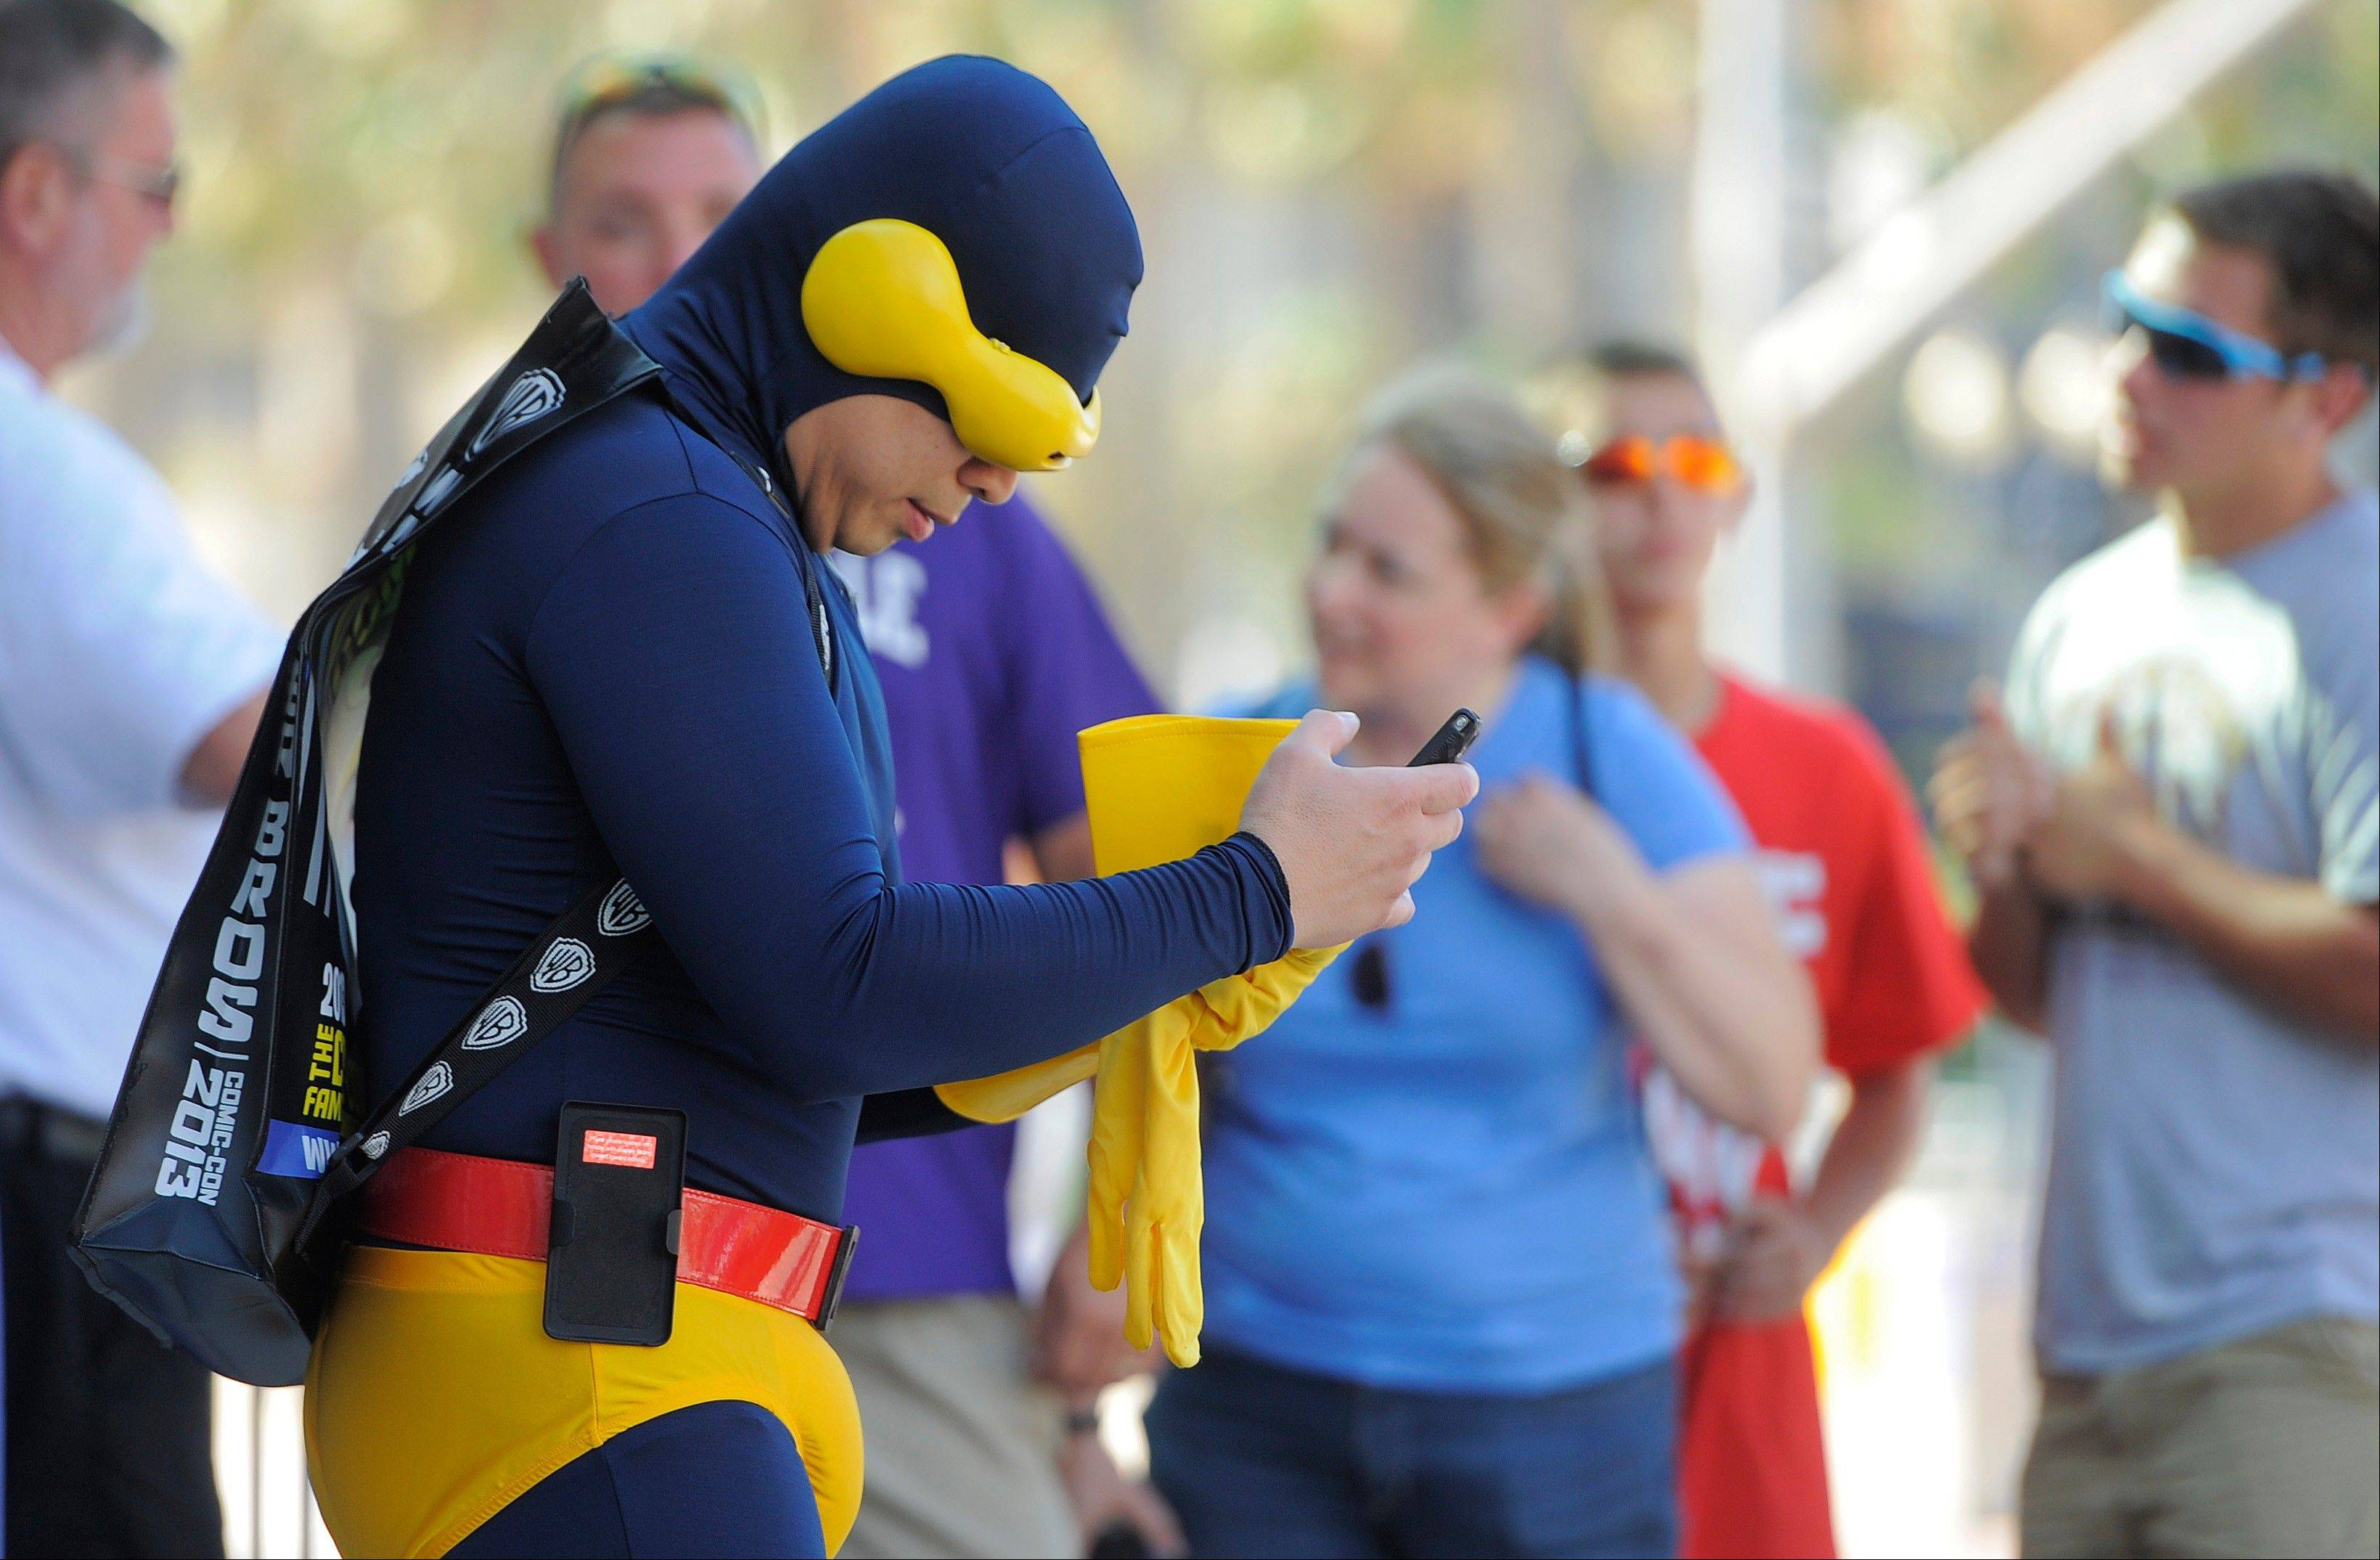 Cyclops of the X-Men -- aka Gene Ross of Chula Vista, Calif. -- checks his cell phone as he stands outside the 2013 Comic-Con International Convention on Wednesday, July 17, in San Diego, Calif.